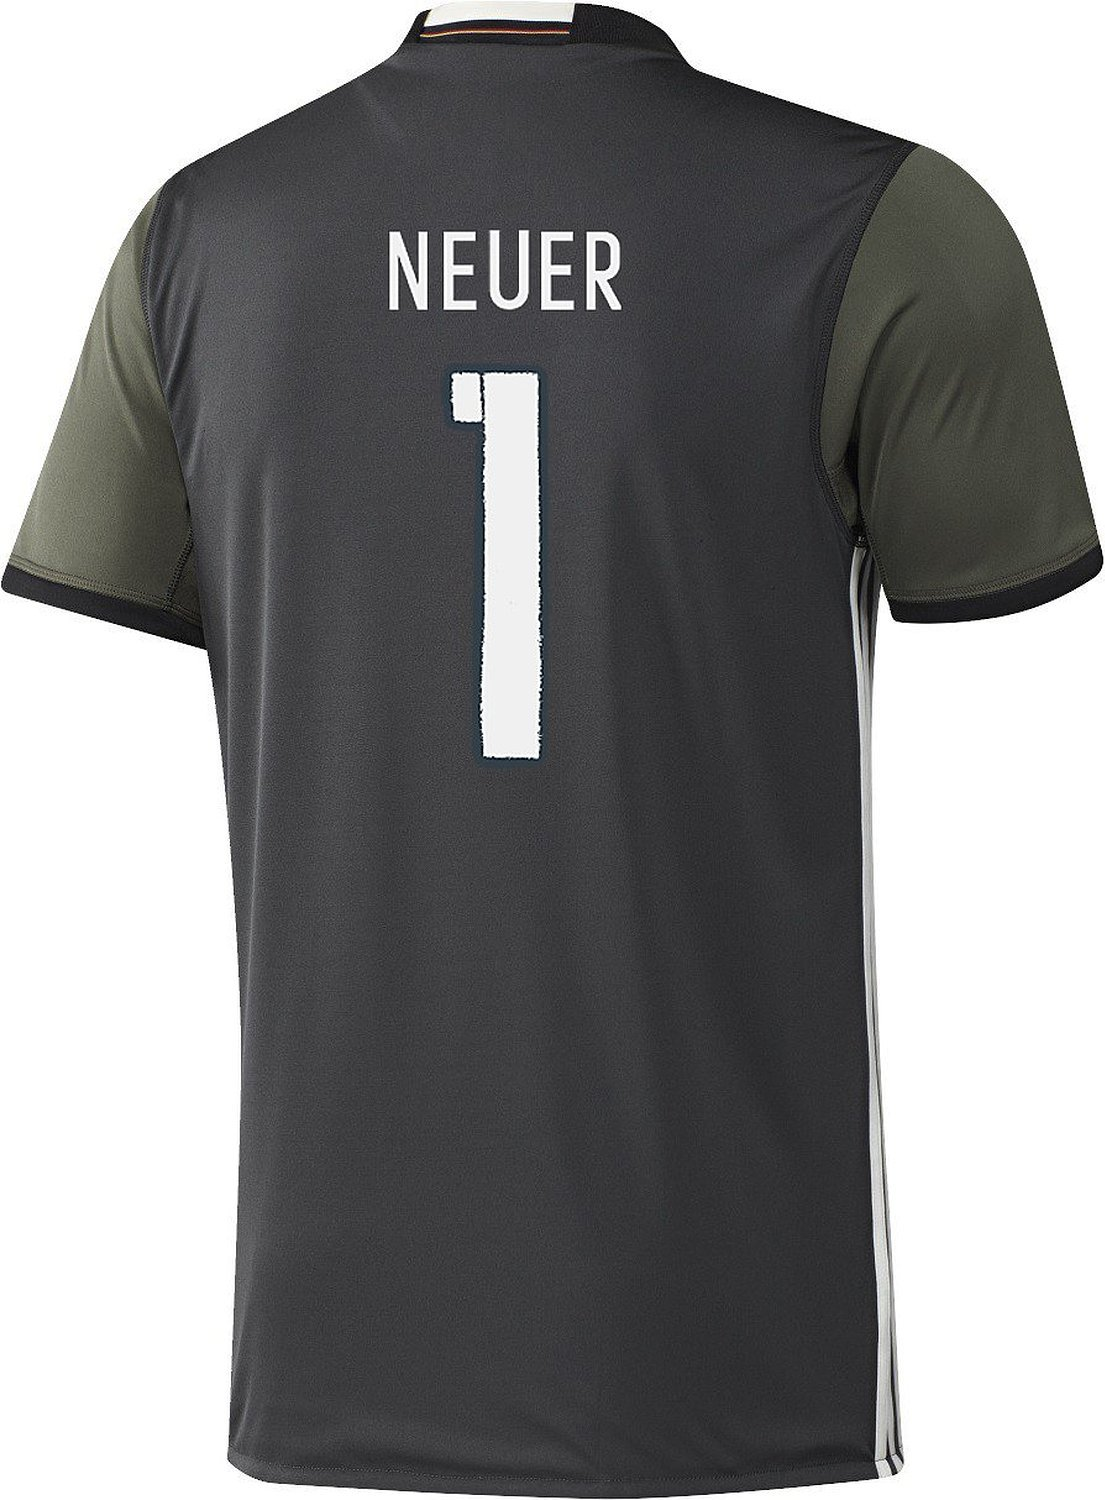 Adidas NEUER #1 Germany Away Soccer Jersey Euro 2016(Authentic name and number of player)/サッカーユニフォーム ドイツ アウェイ用 ノイアー 背番号1 Euro 2016 Large  B01A5ZC37W